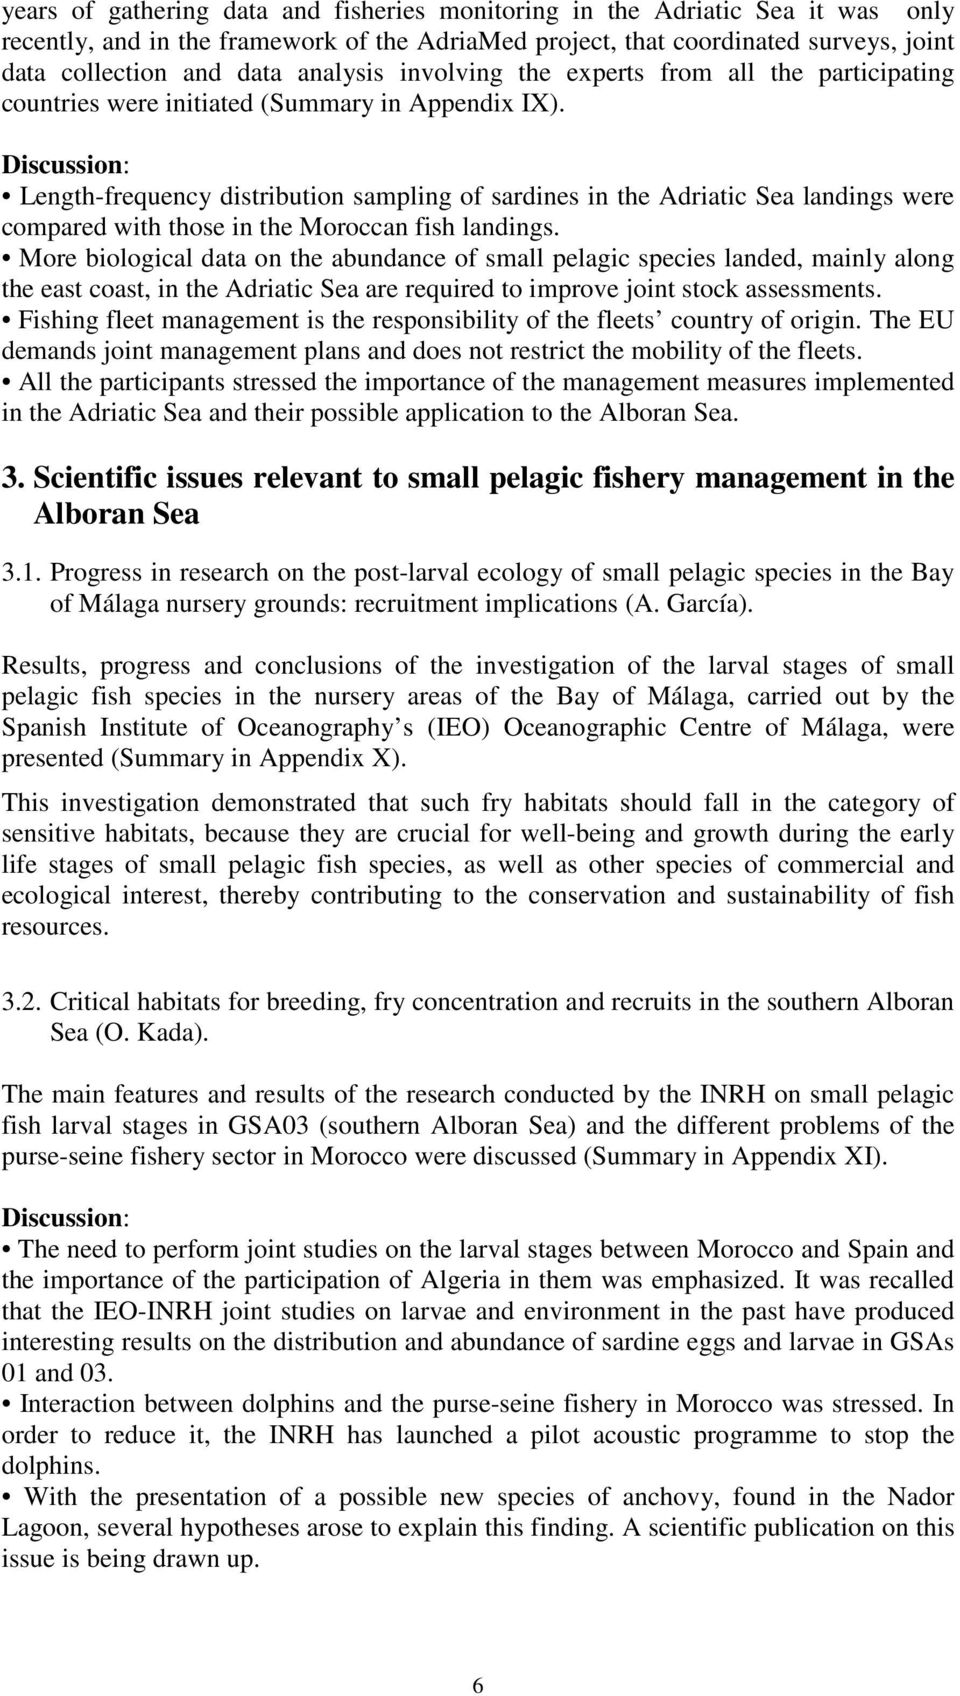 Discussion: Length-frequency distribution sampling of sardines in the Adriatic Sea landings were compared with those in the Moroccan fish landings.